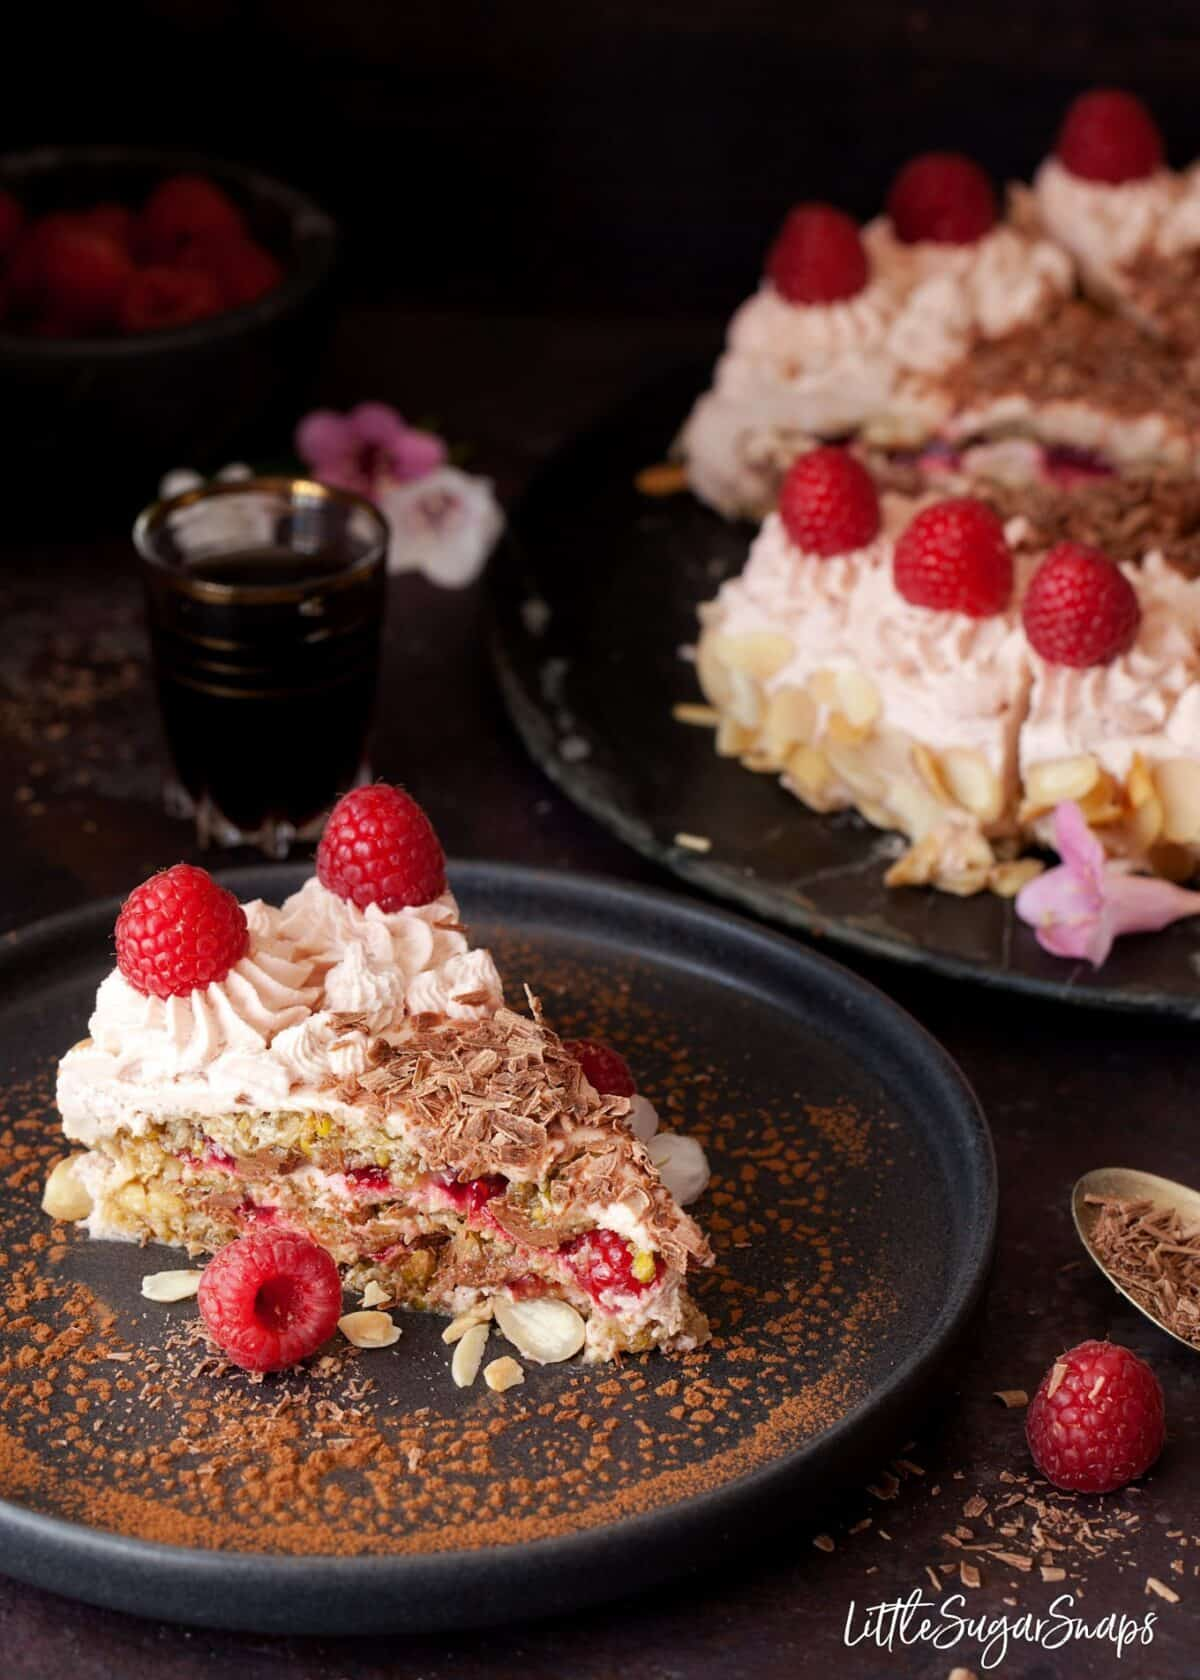 A slice Chocolate Raspberry Dacquoise Cake on a black plate, in front of the entire cake it was cut from. Layers of meringue, cream and raspberry coulis are evidentand the slice is topped with fresh fruit and chocolate flakes